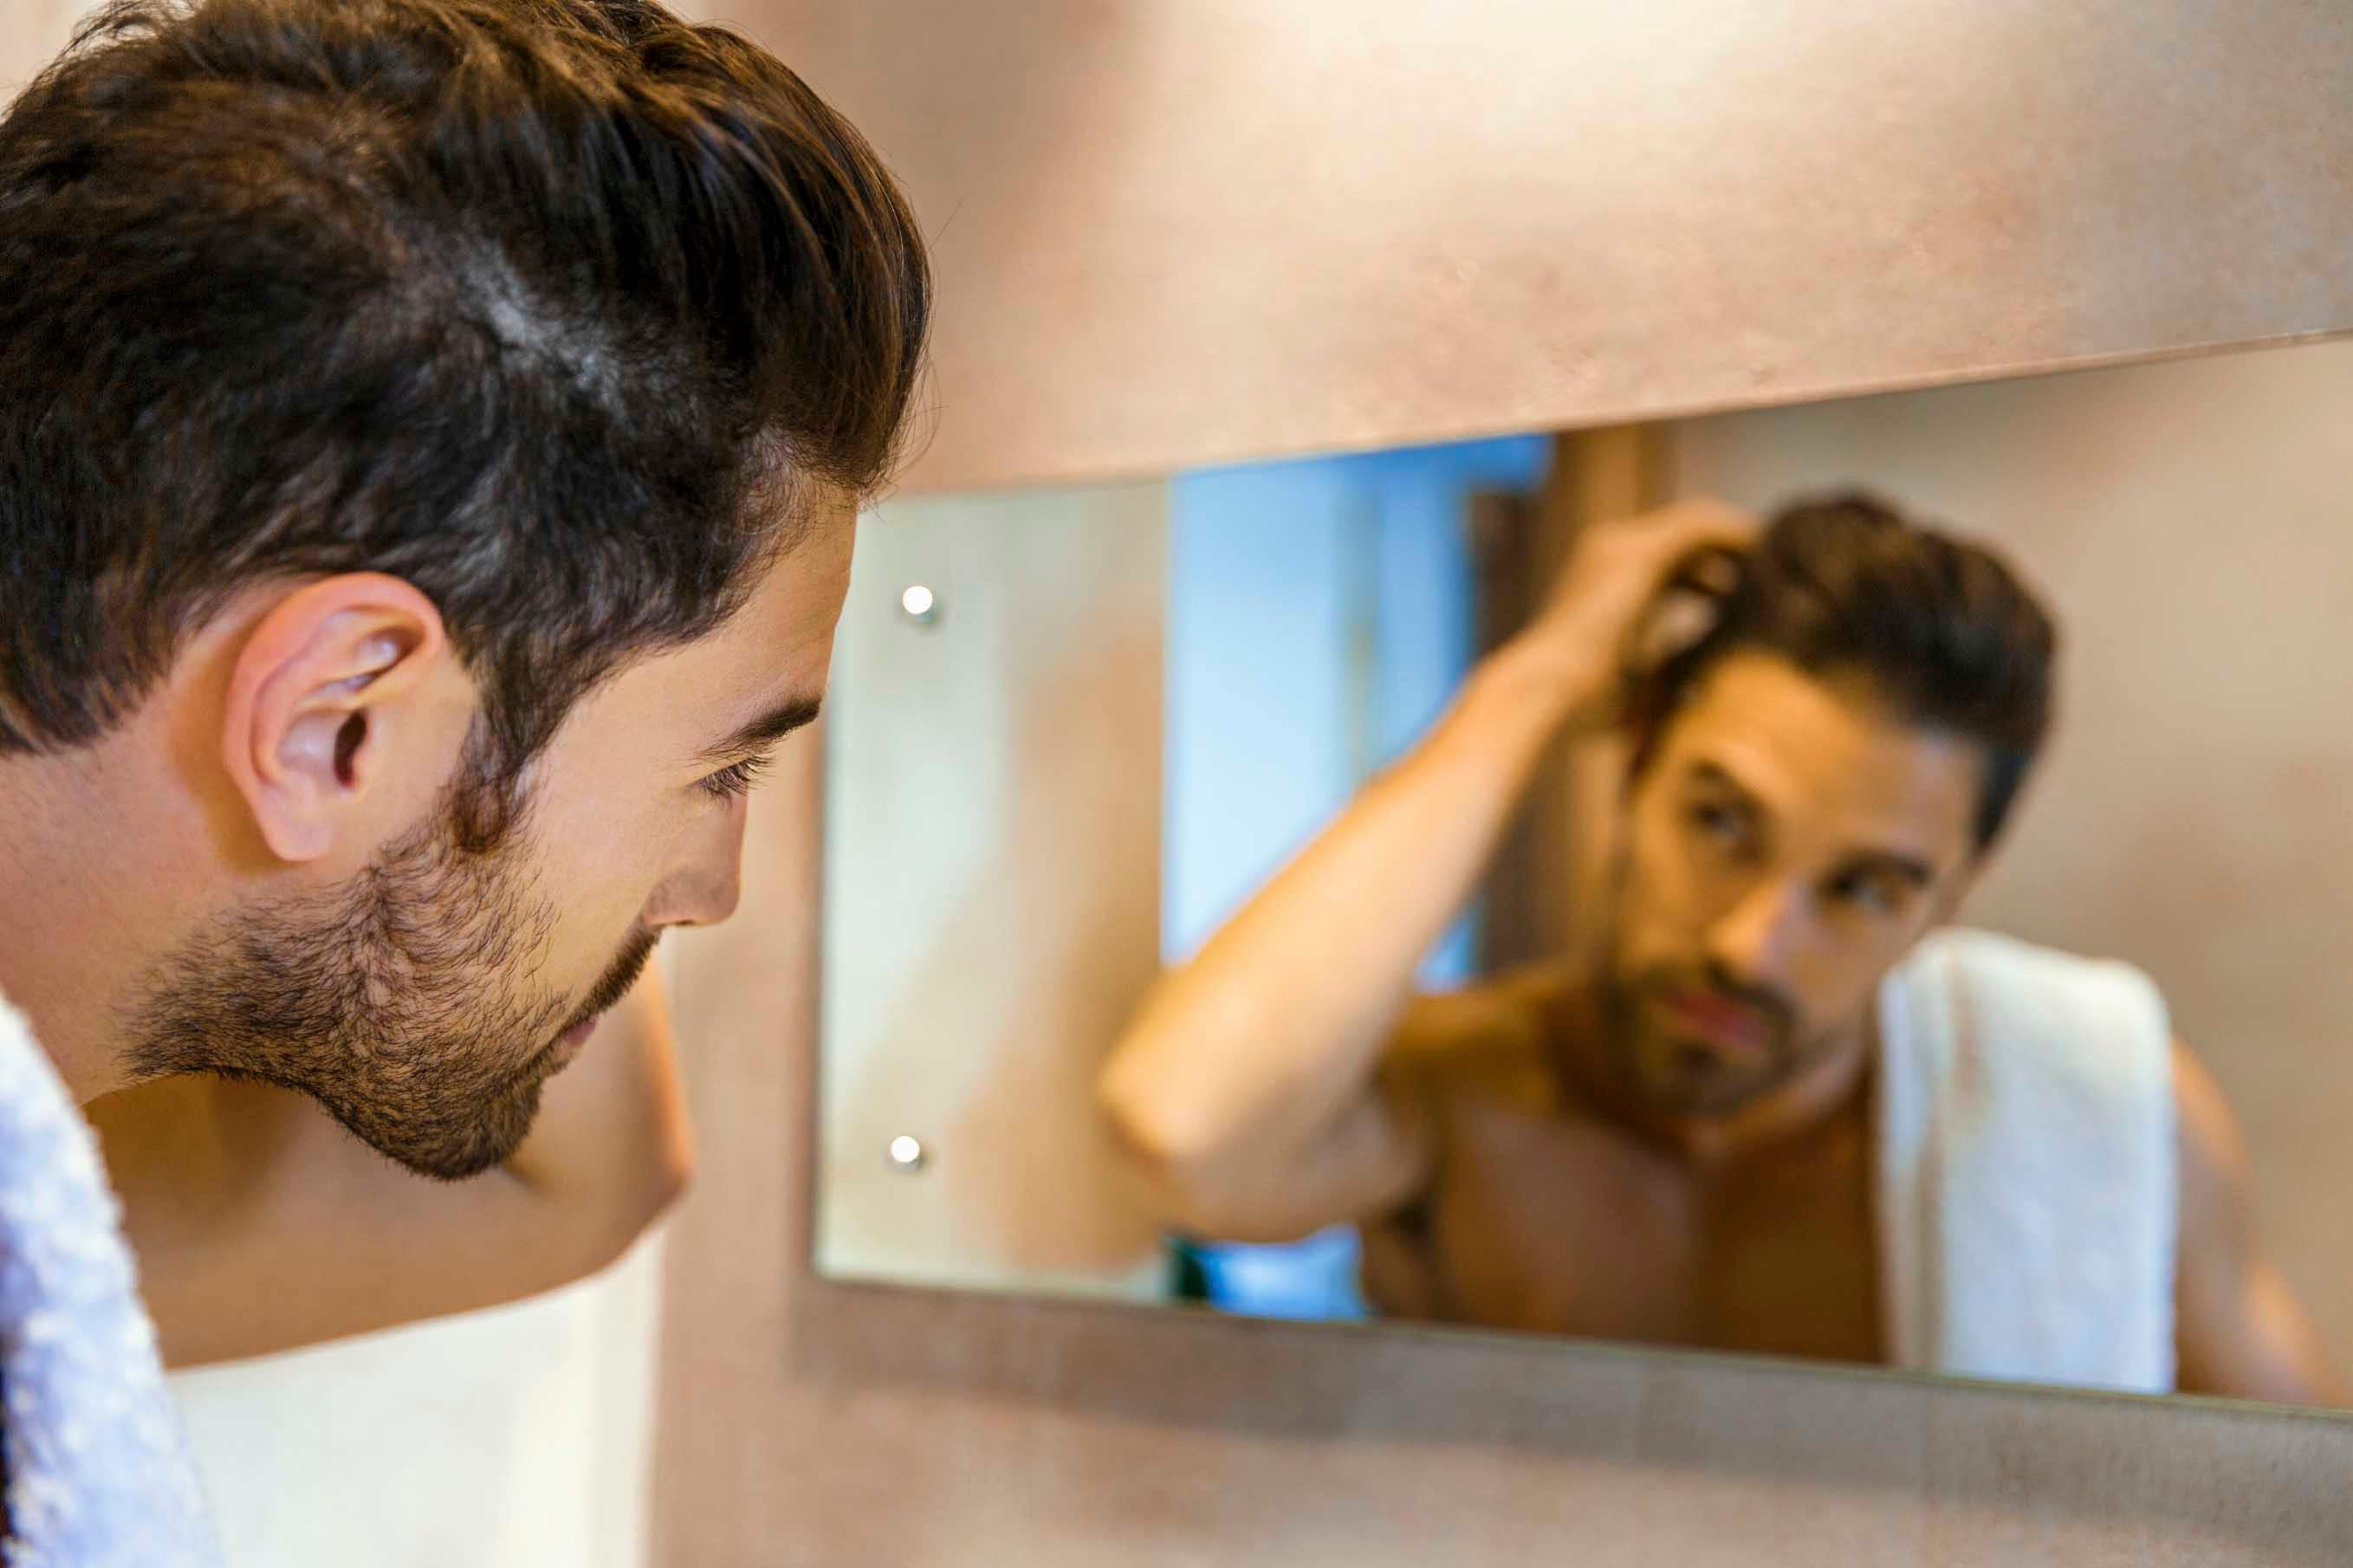 Male pattern baldness man looking in mirror with hand in hair